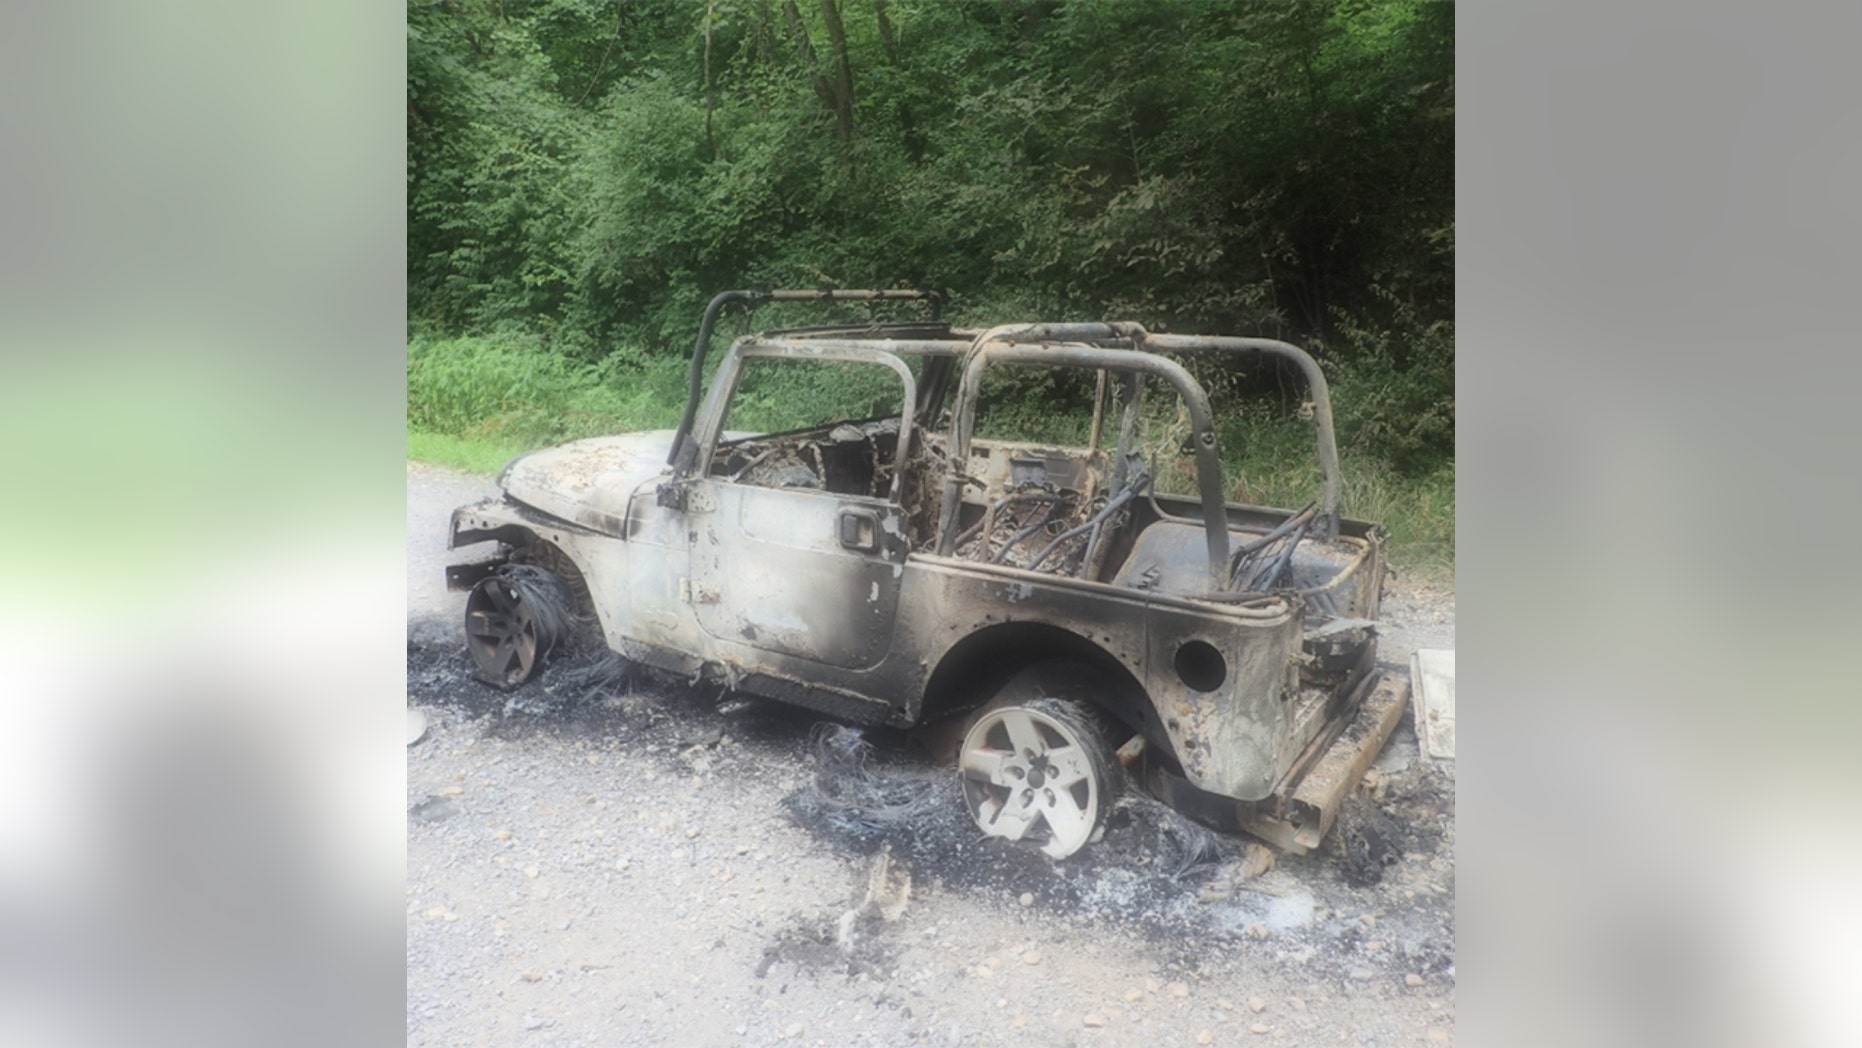 The vehicle was loaded with fireworks that were apparently ignited accidentally as others were being set off nearby.